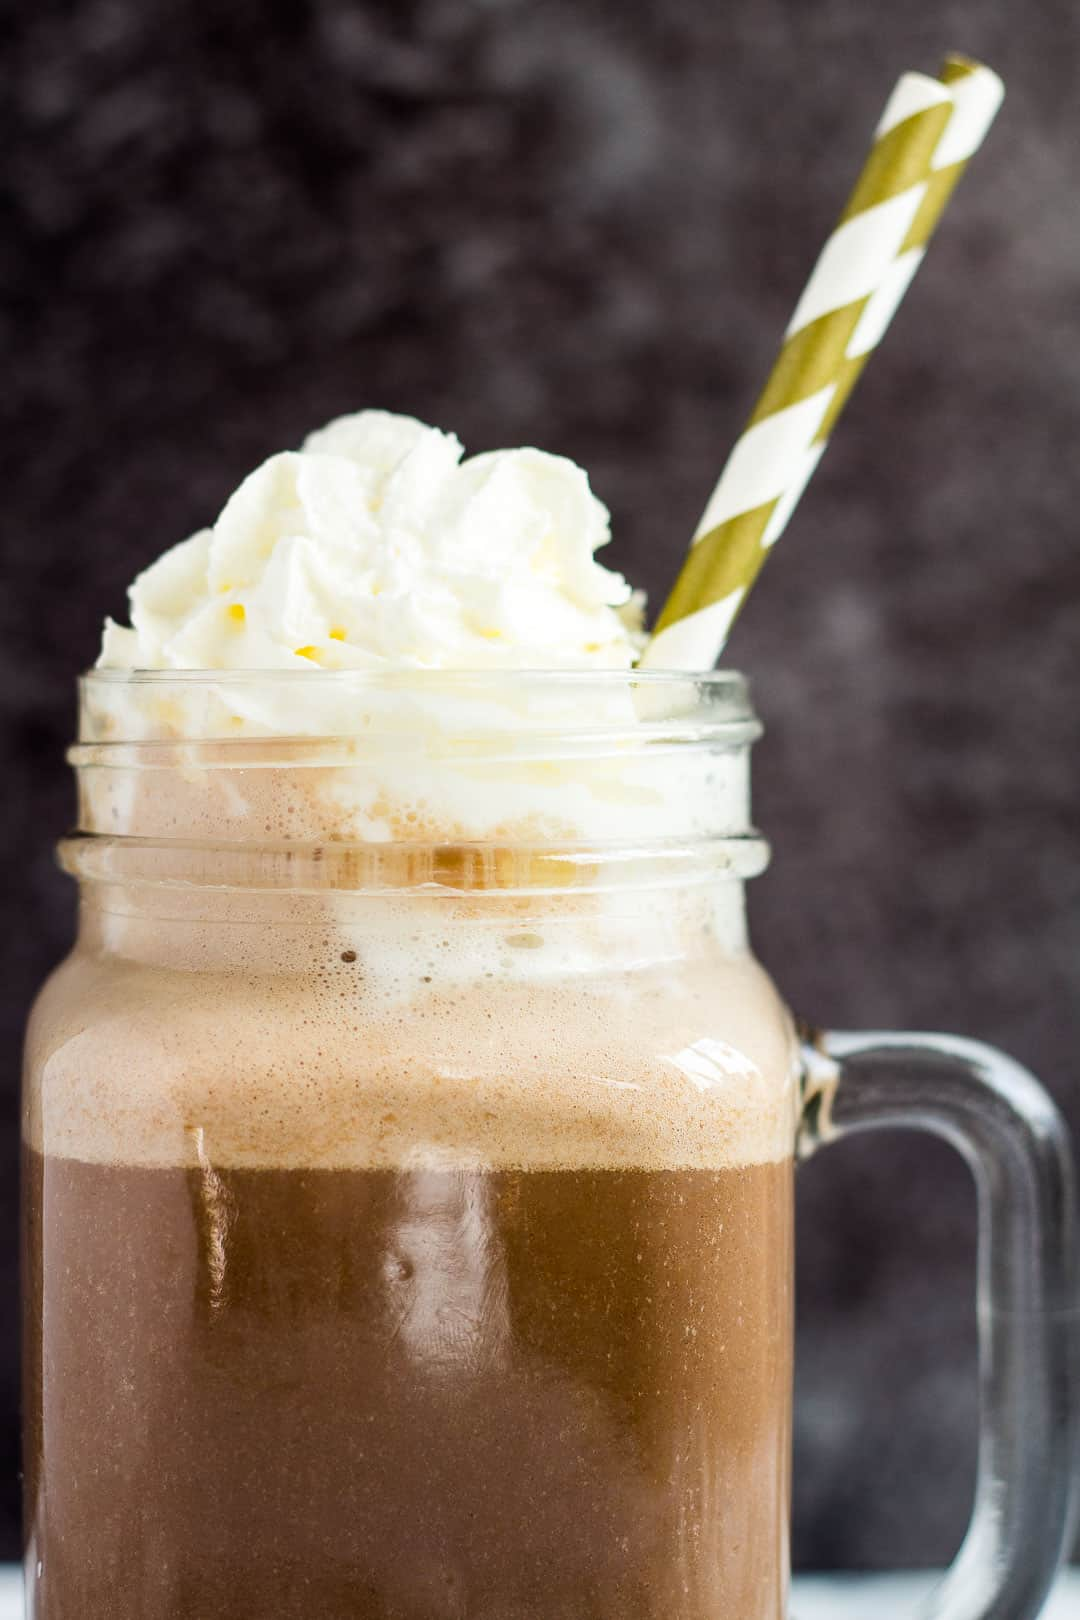 A close-up shot of a mason jar filled with chocolate eggnog with whipped cream on top.